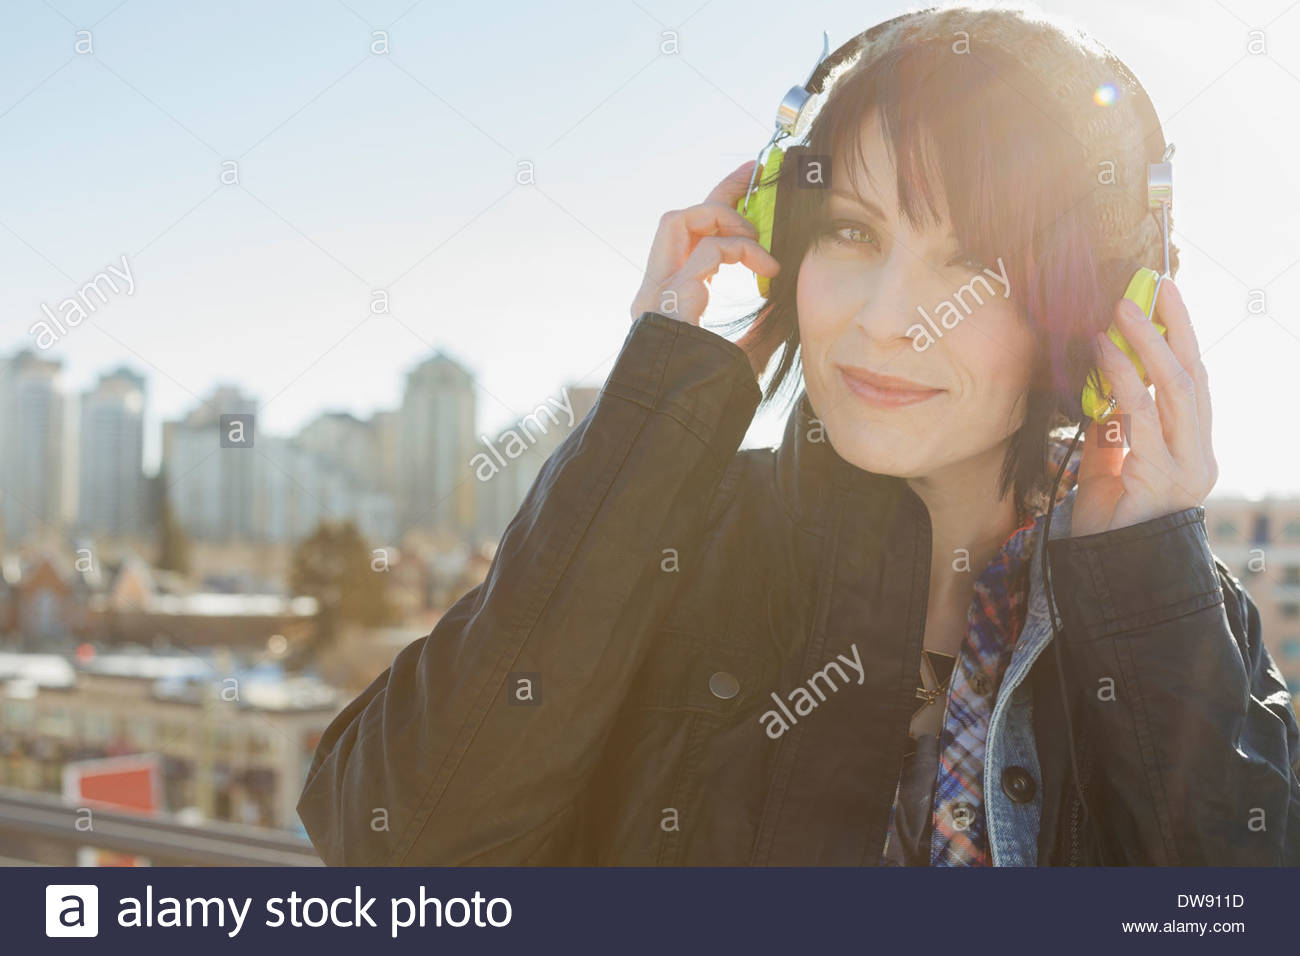 Portrait of woman listening to headphones outdoors Photo Stock